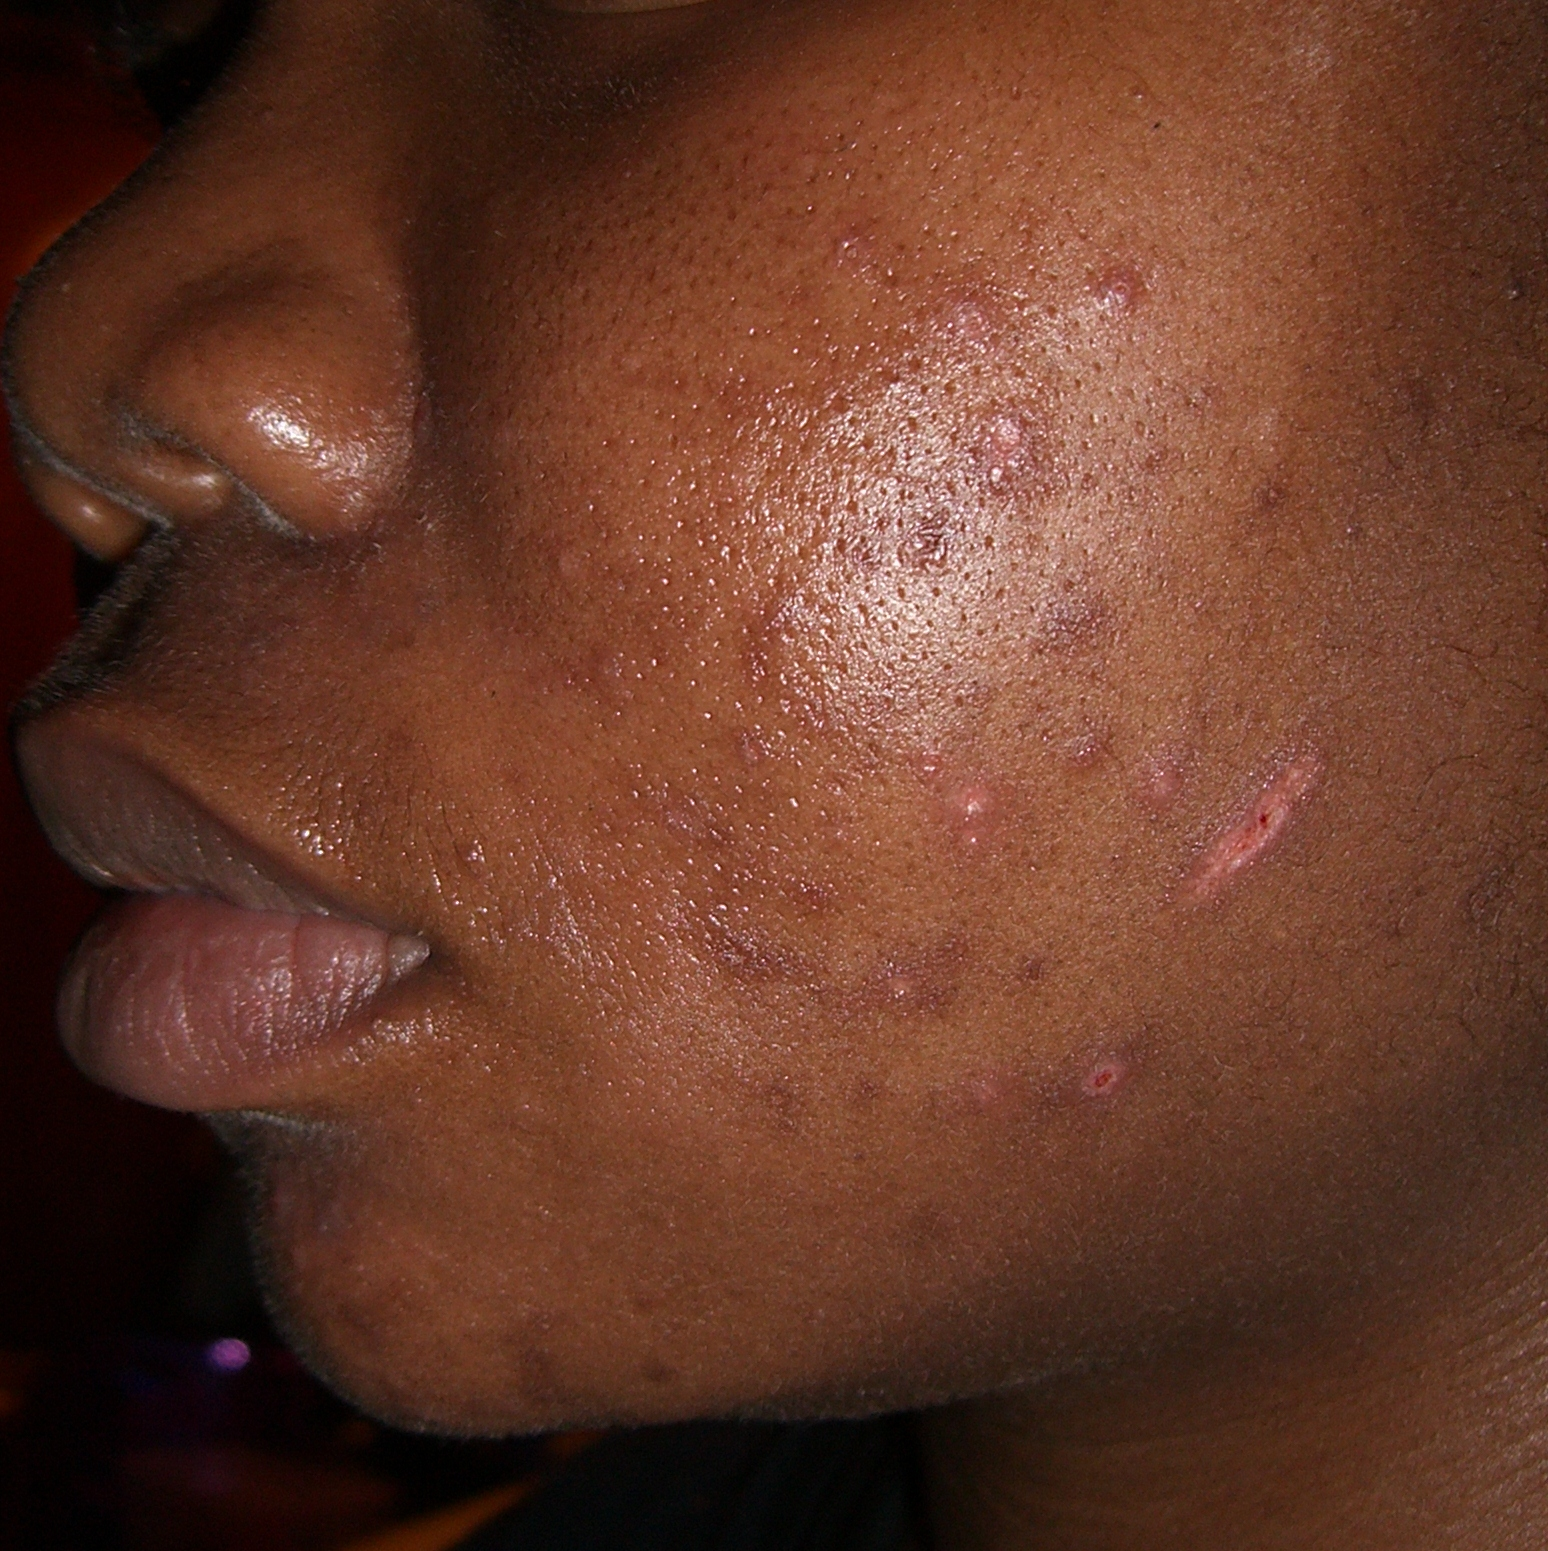 Black Rash On Skin Pictures Photos